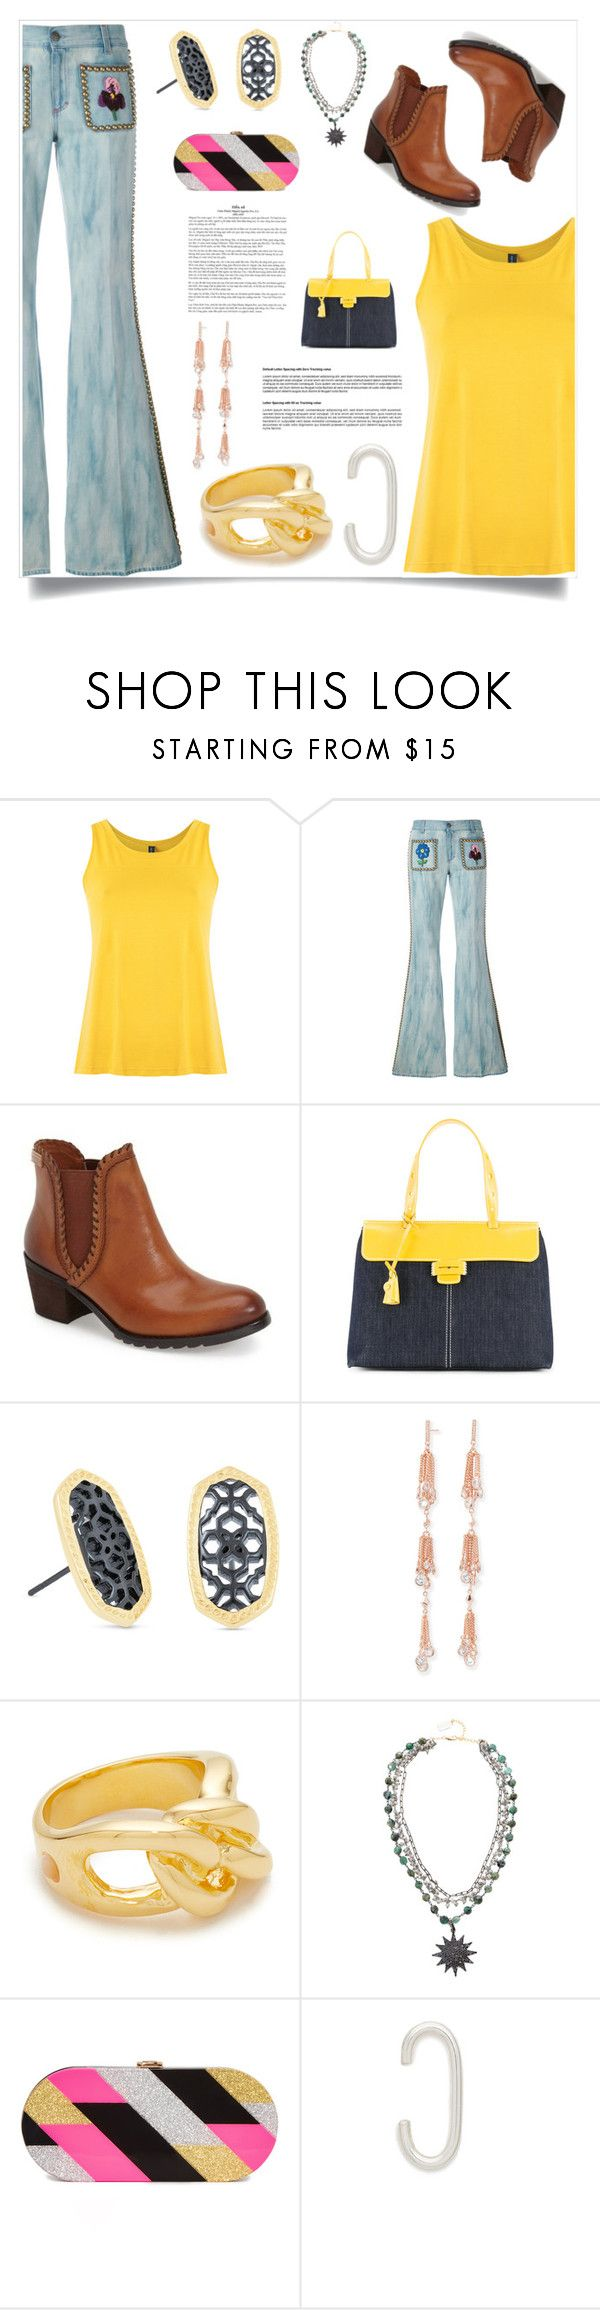 """Be your own style"" by denisee-denisee ❤ liked on Polyvore featuring Lygia & Nanny, Gucci, Pikolinos, Myriam Schaefer, Kendra Scott, Lizzie Fortunato, Ela Rae and Milly"